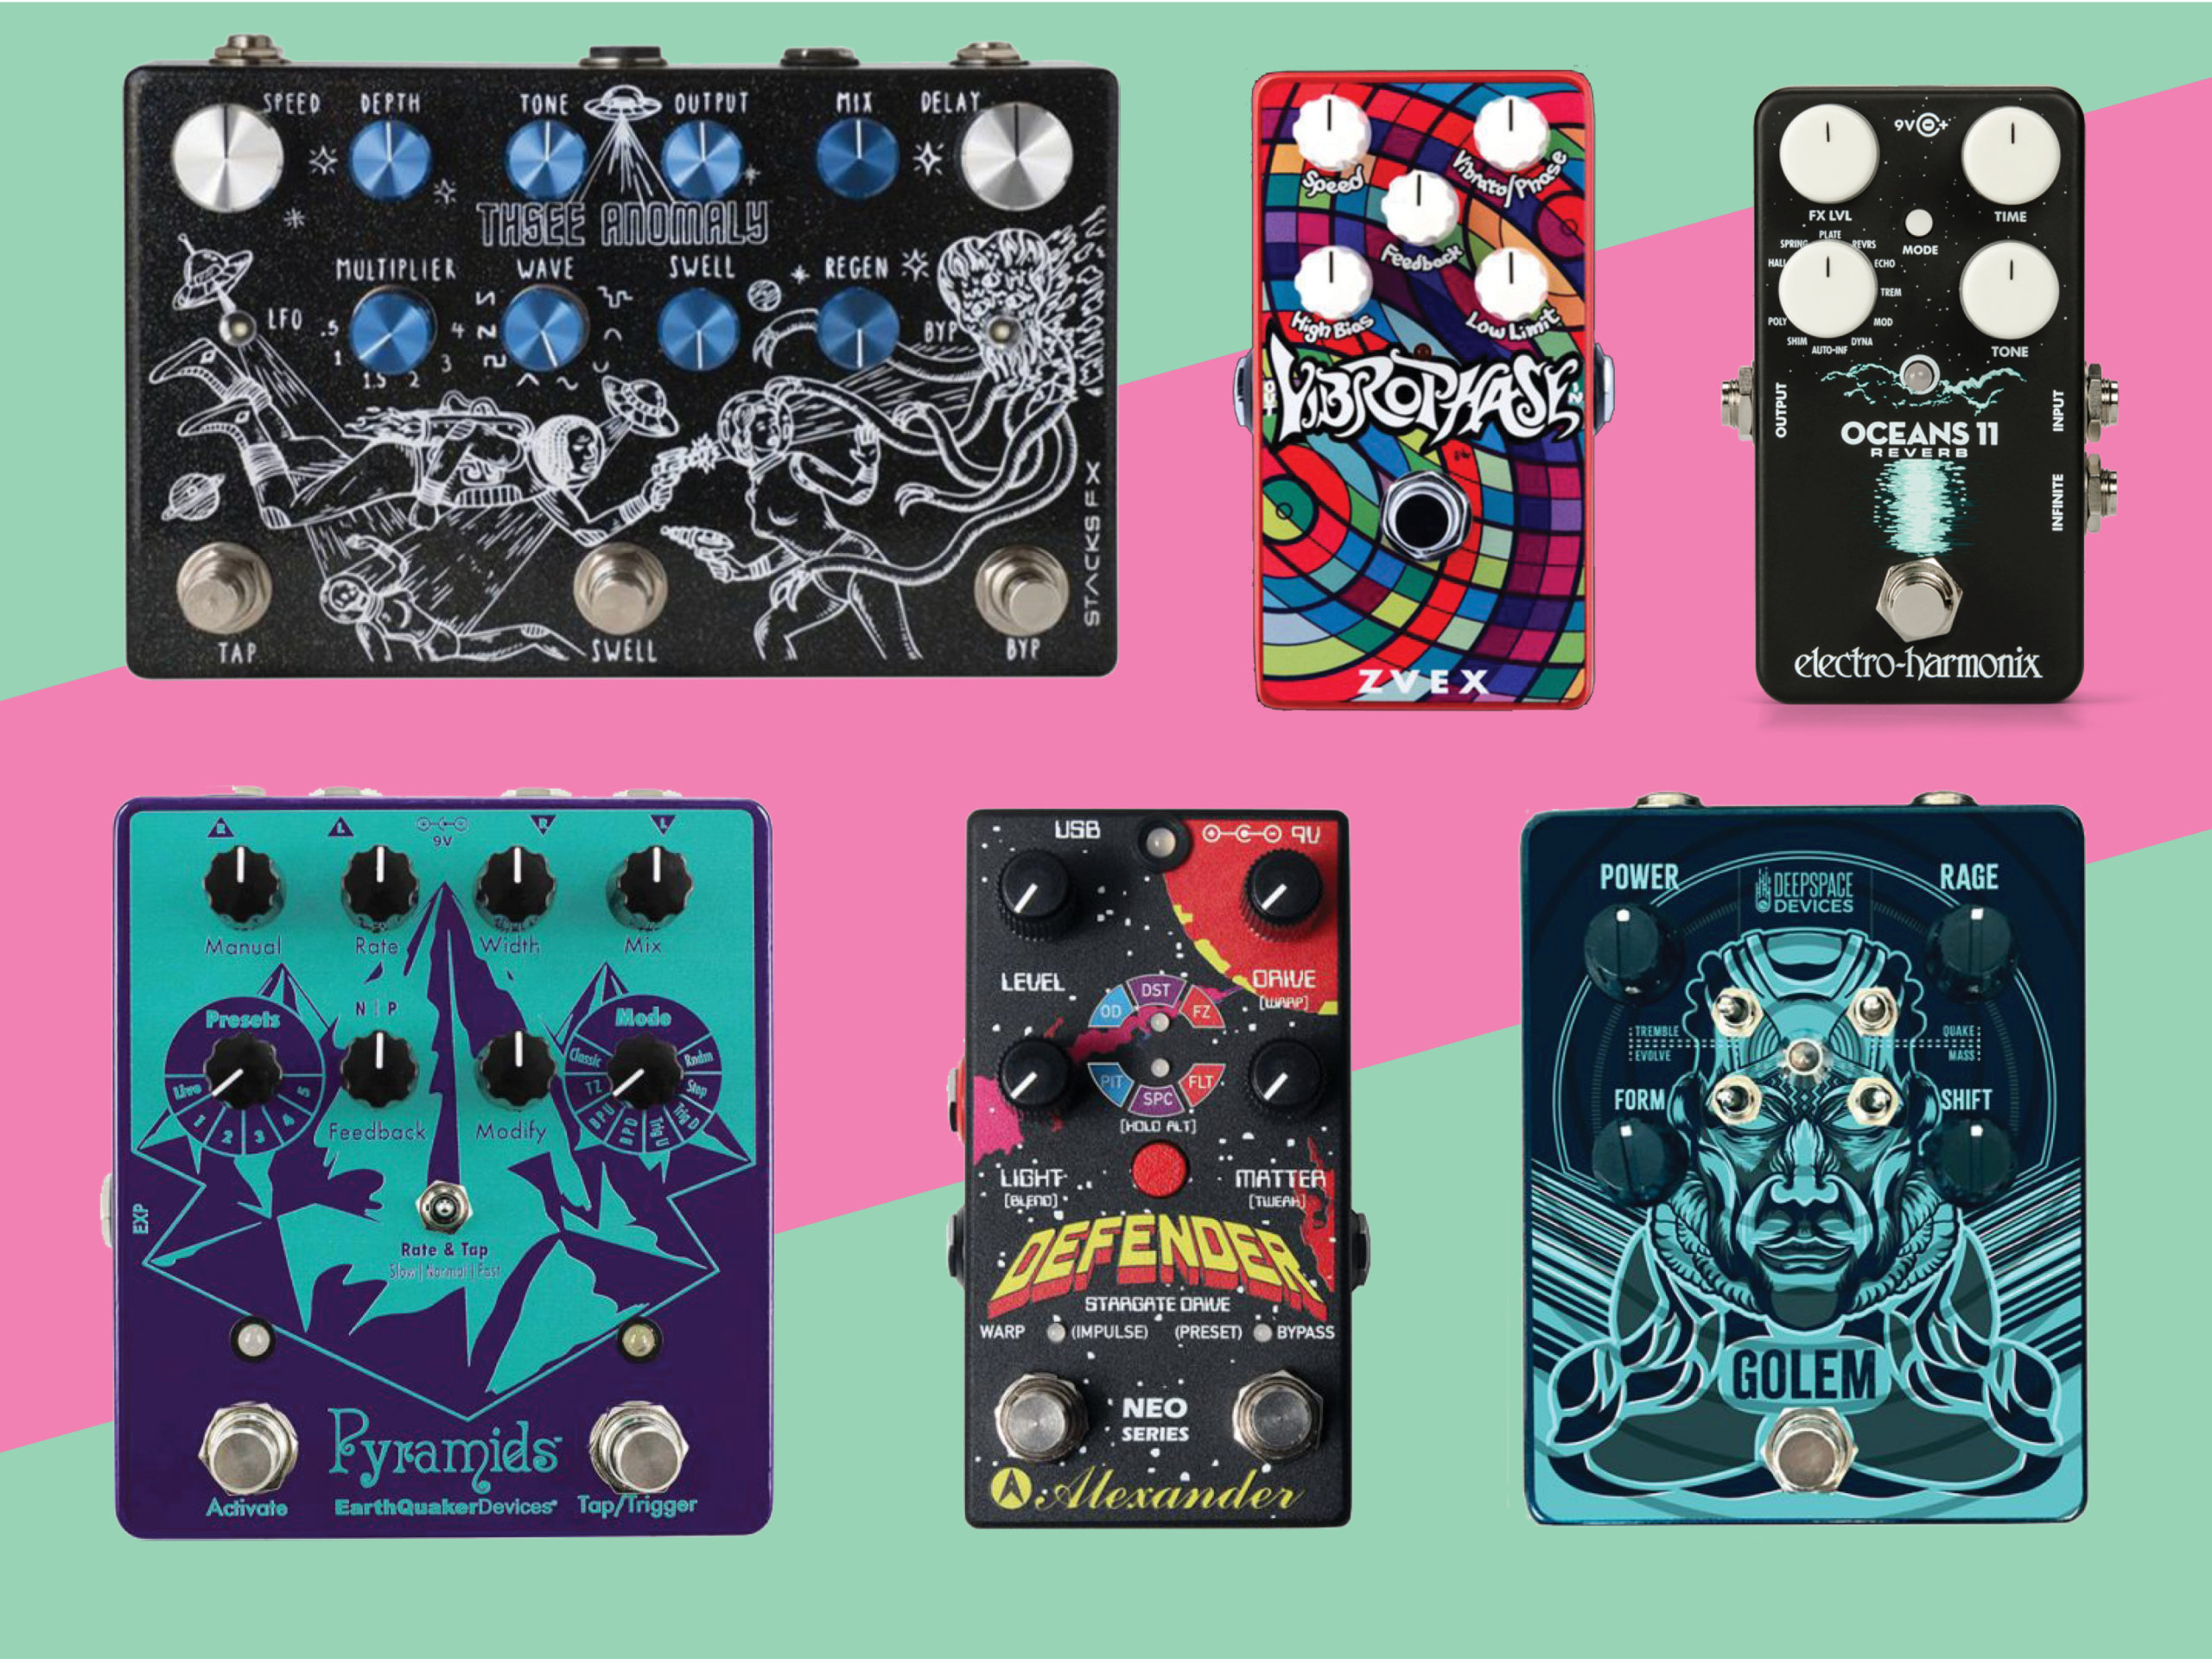 12 new pedals and effects units for June 2018